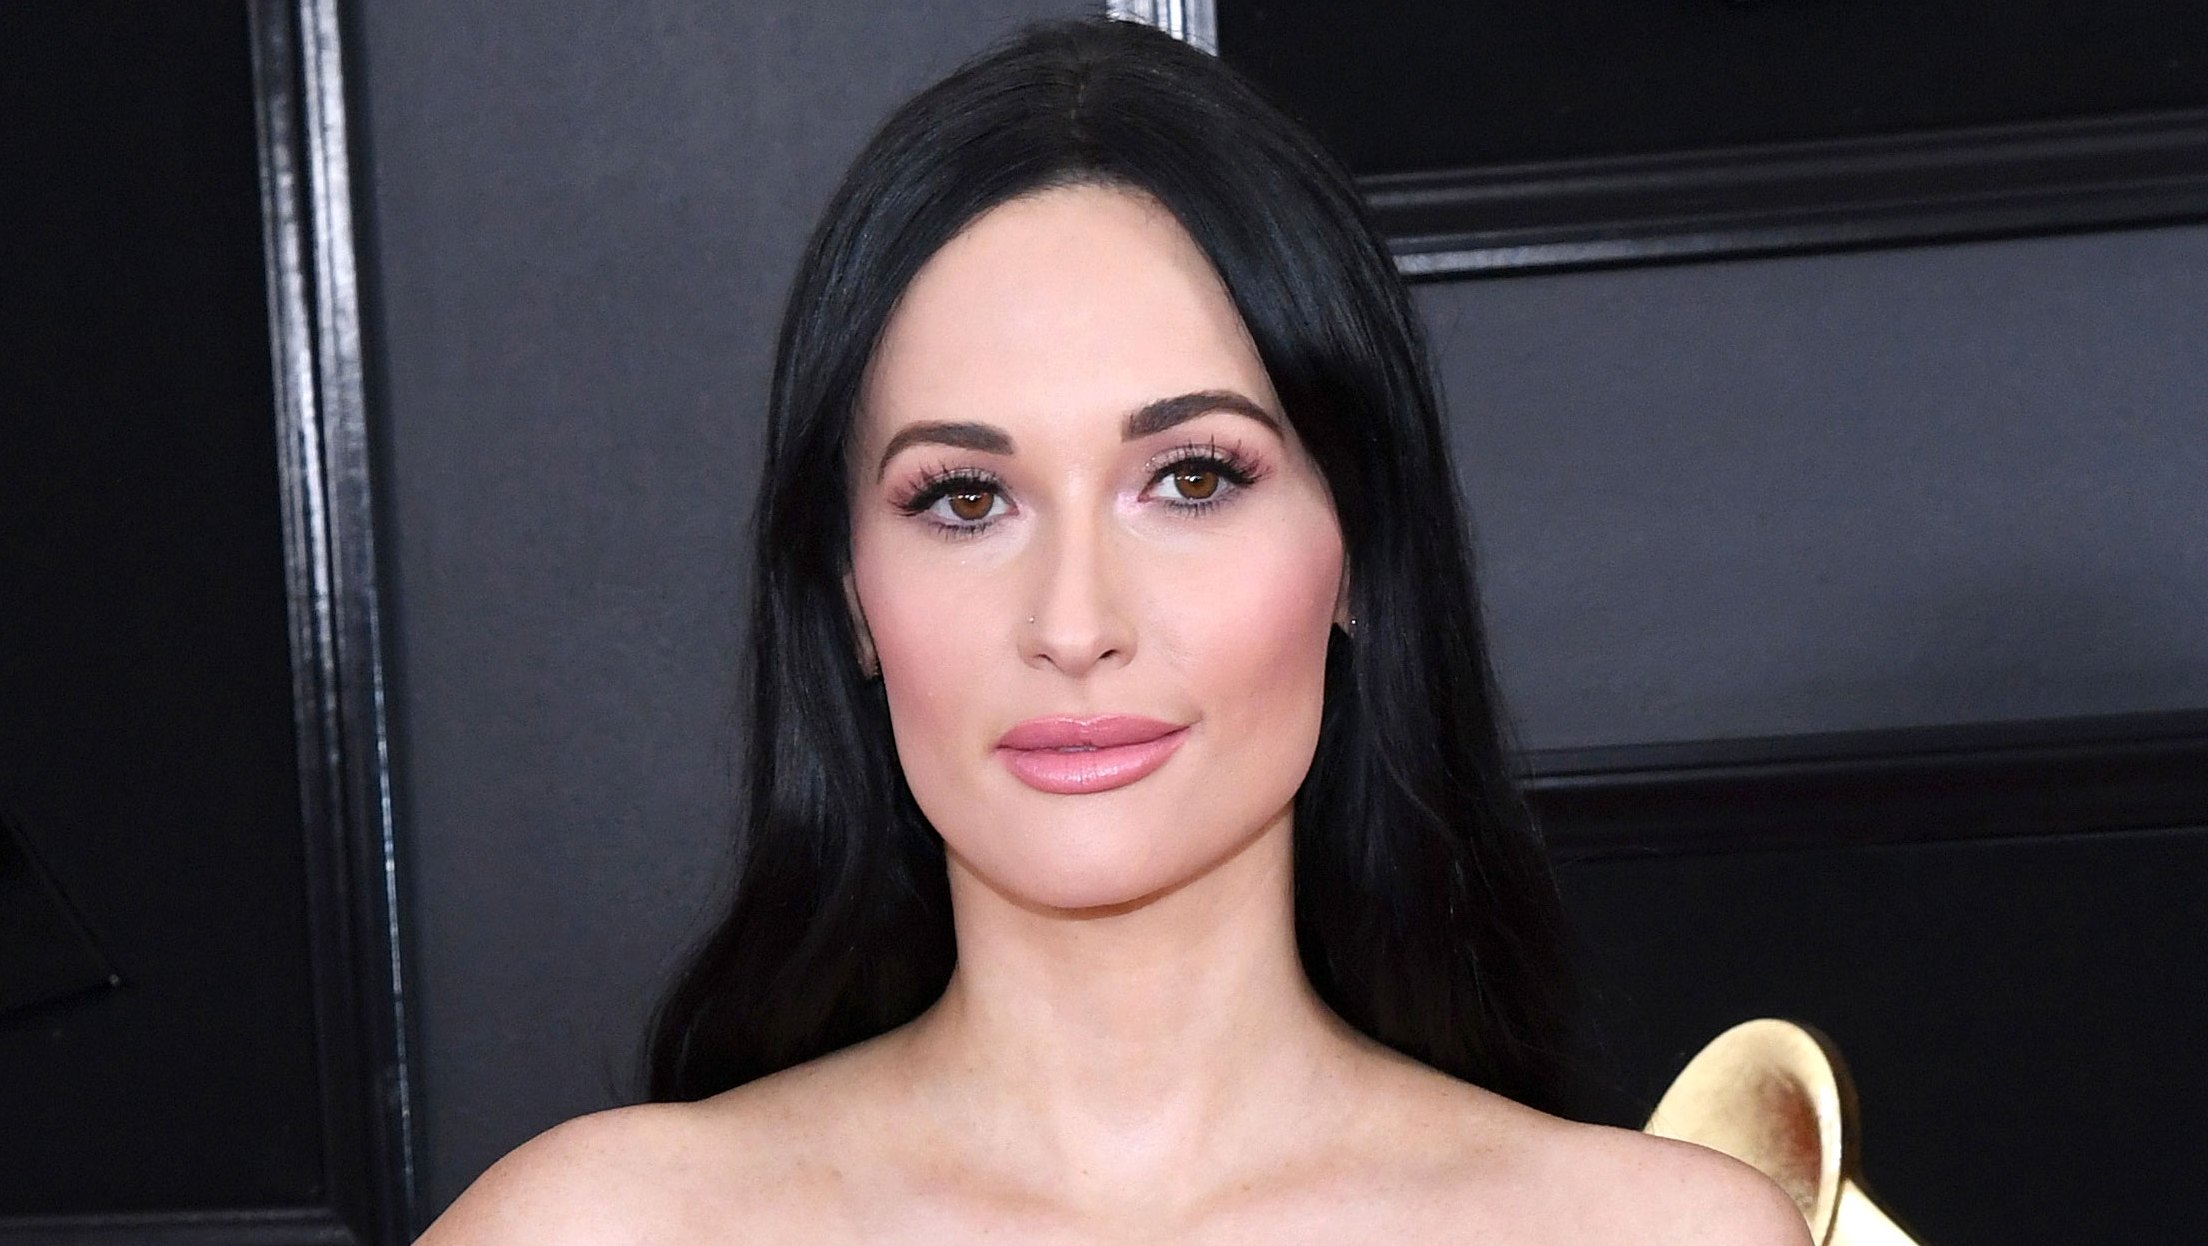 Kacey Musgraves' Trainer Confused by Singer's Gym Playlist: 'What Is This?'